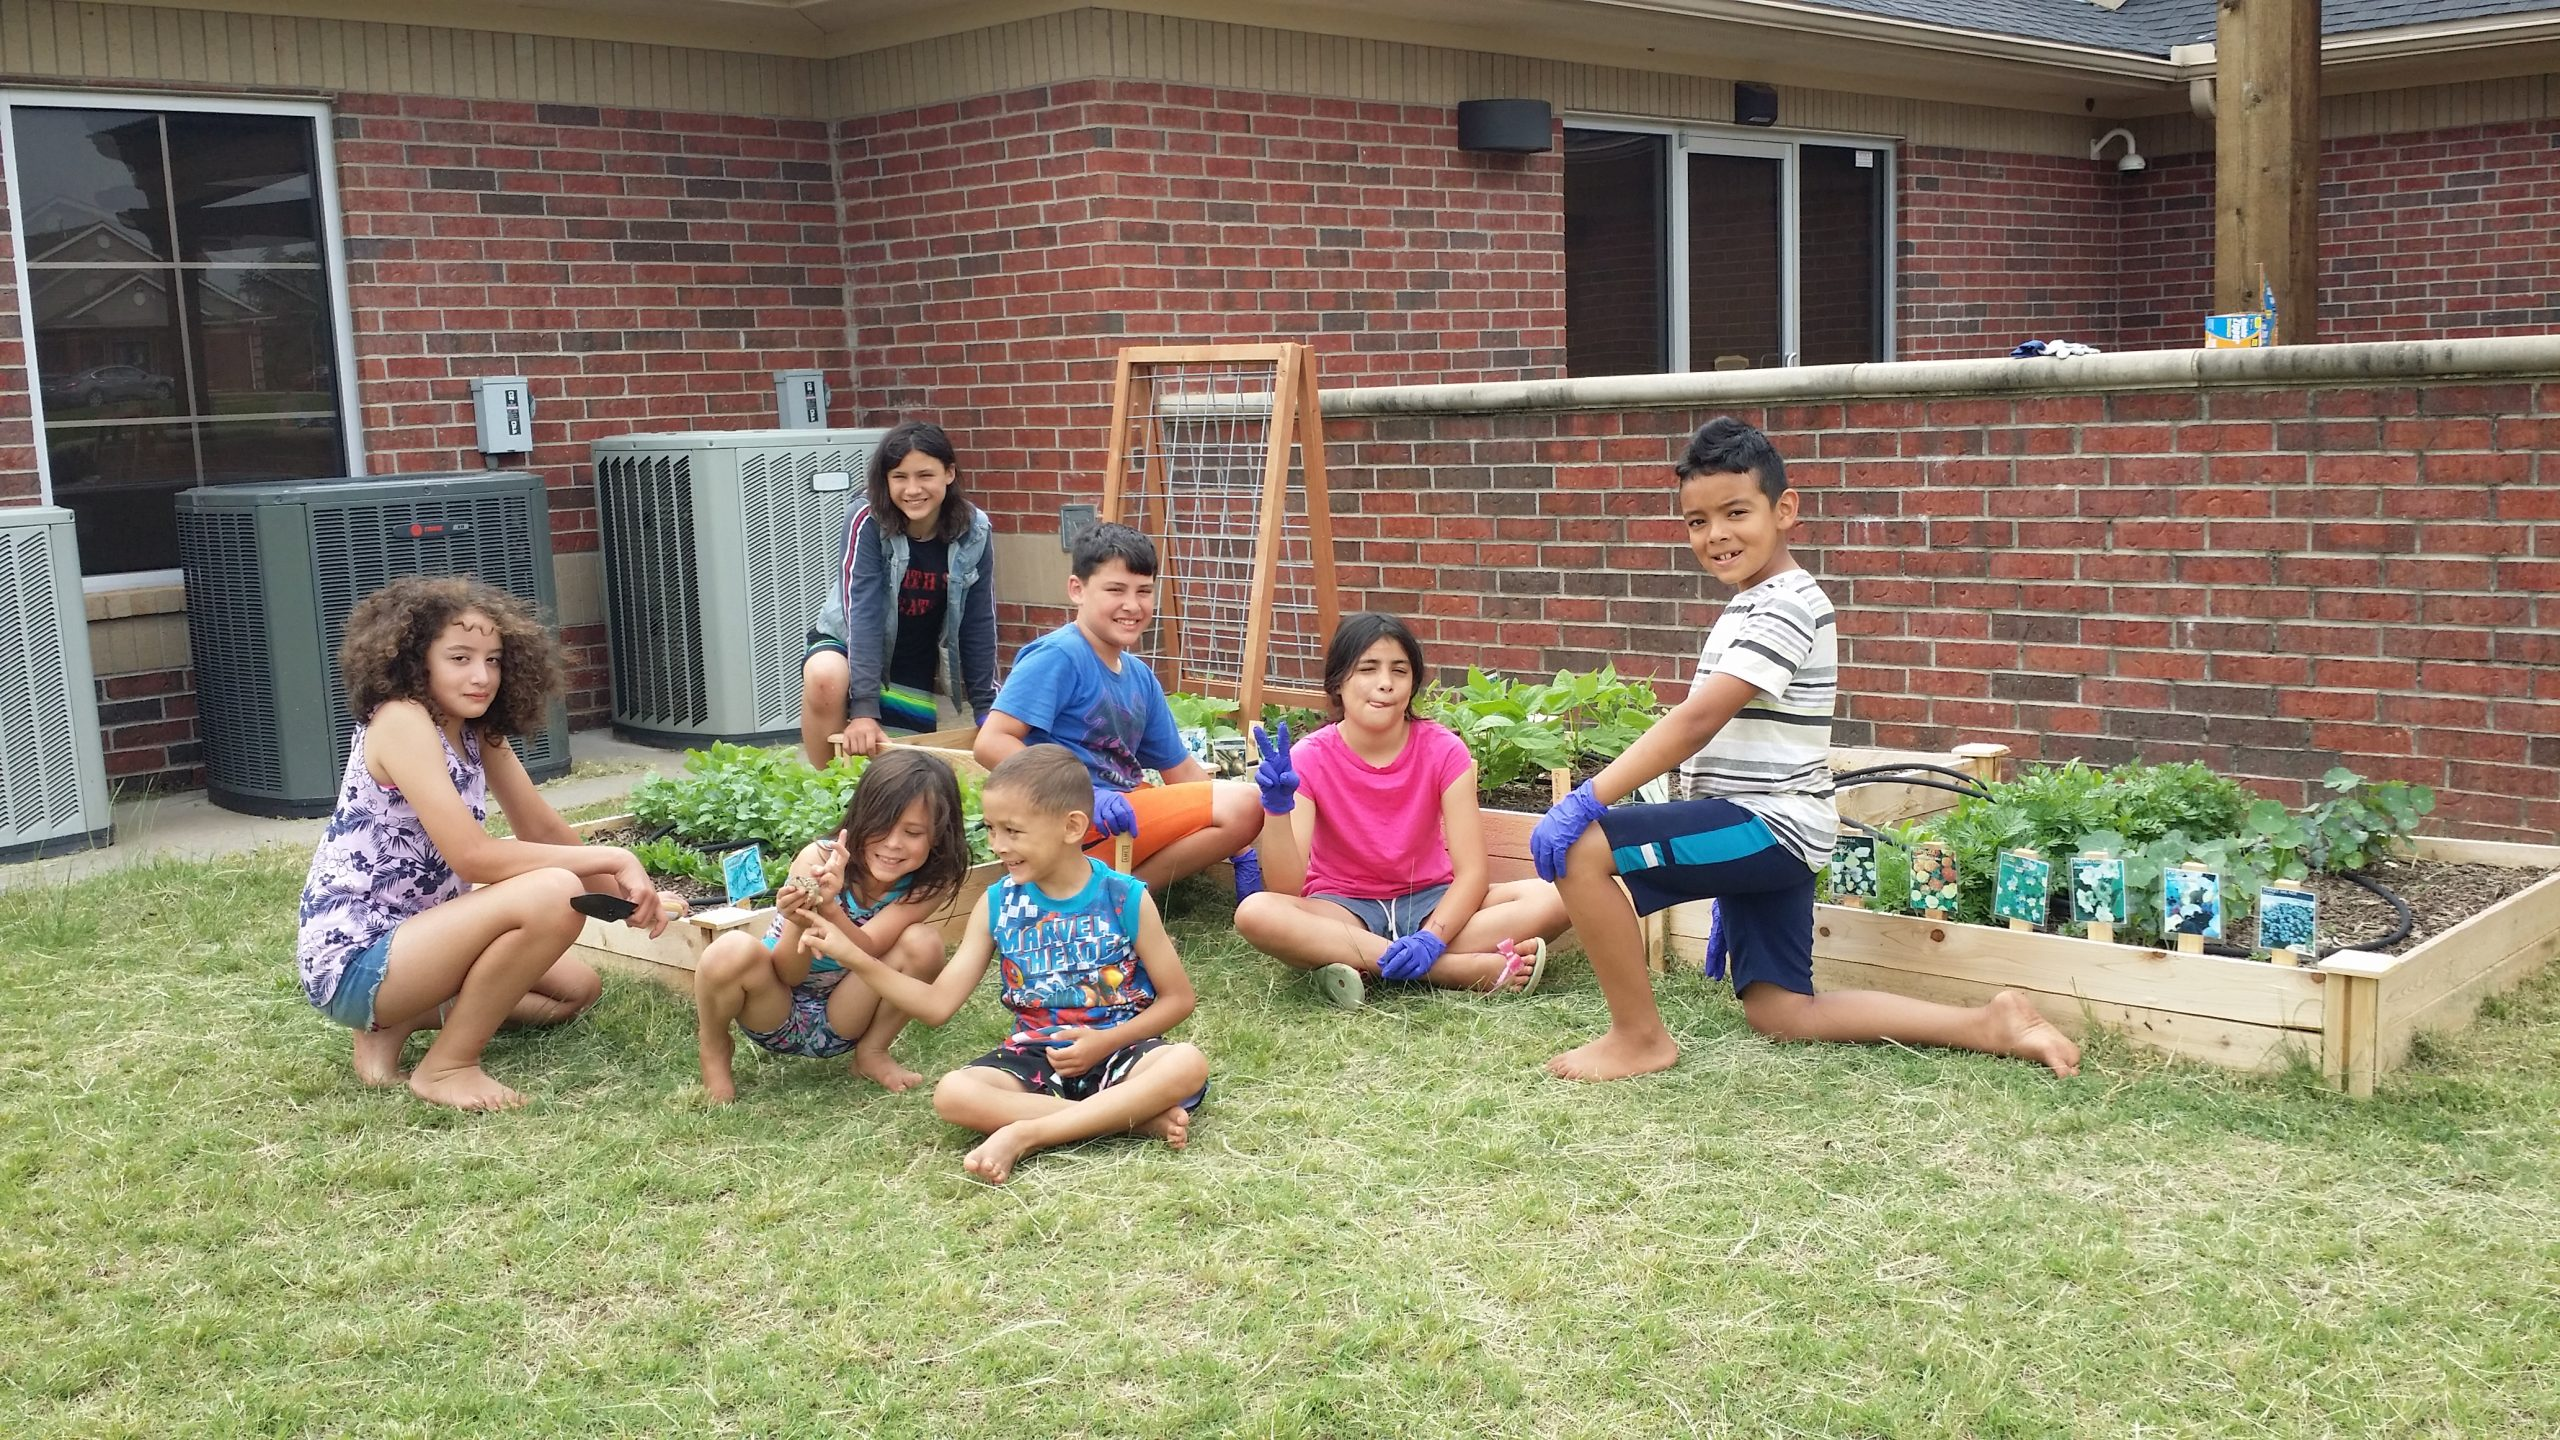 Lujan Family at the Blanchard Public Library garden